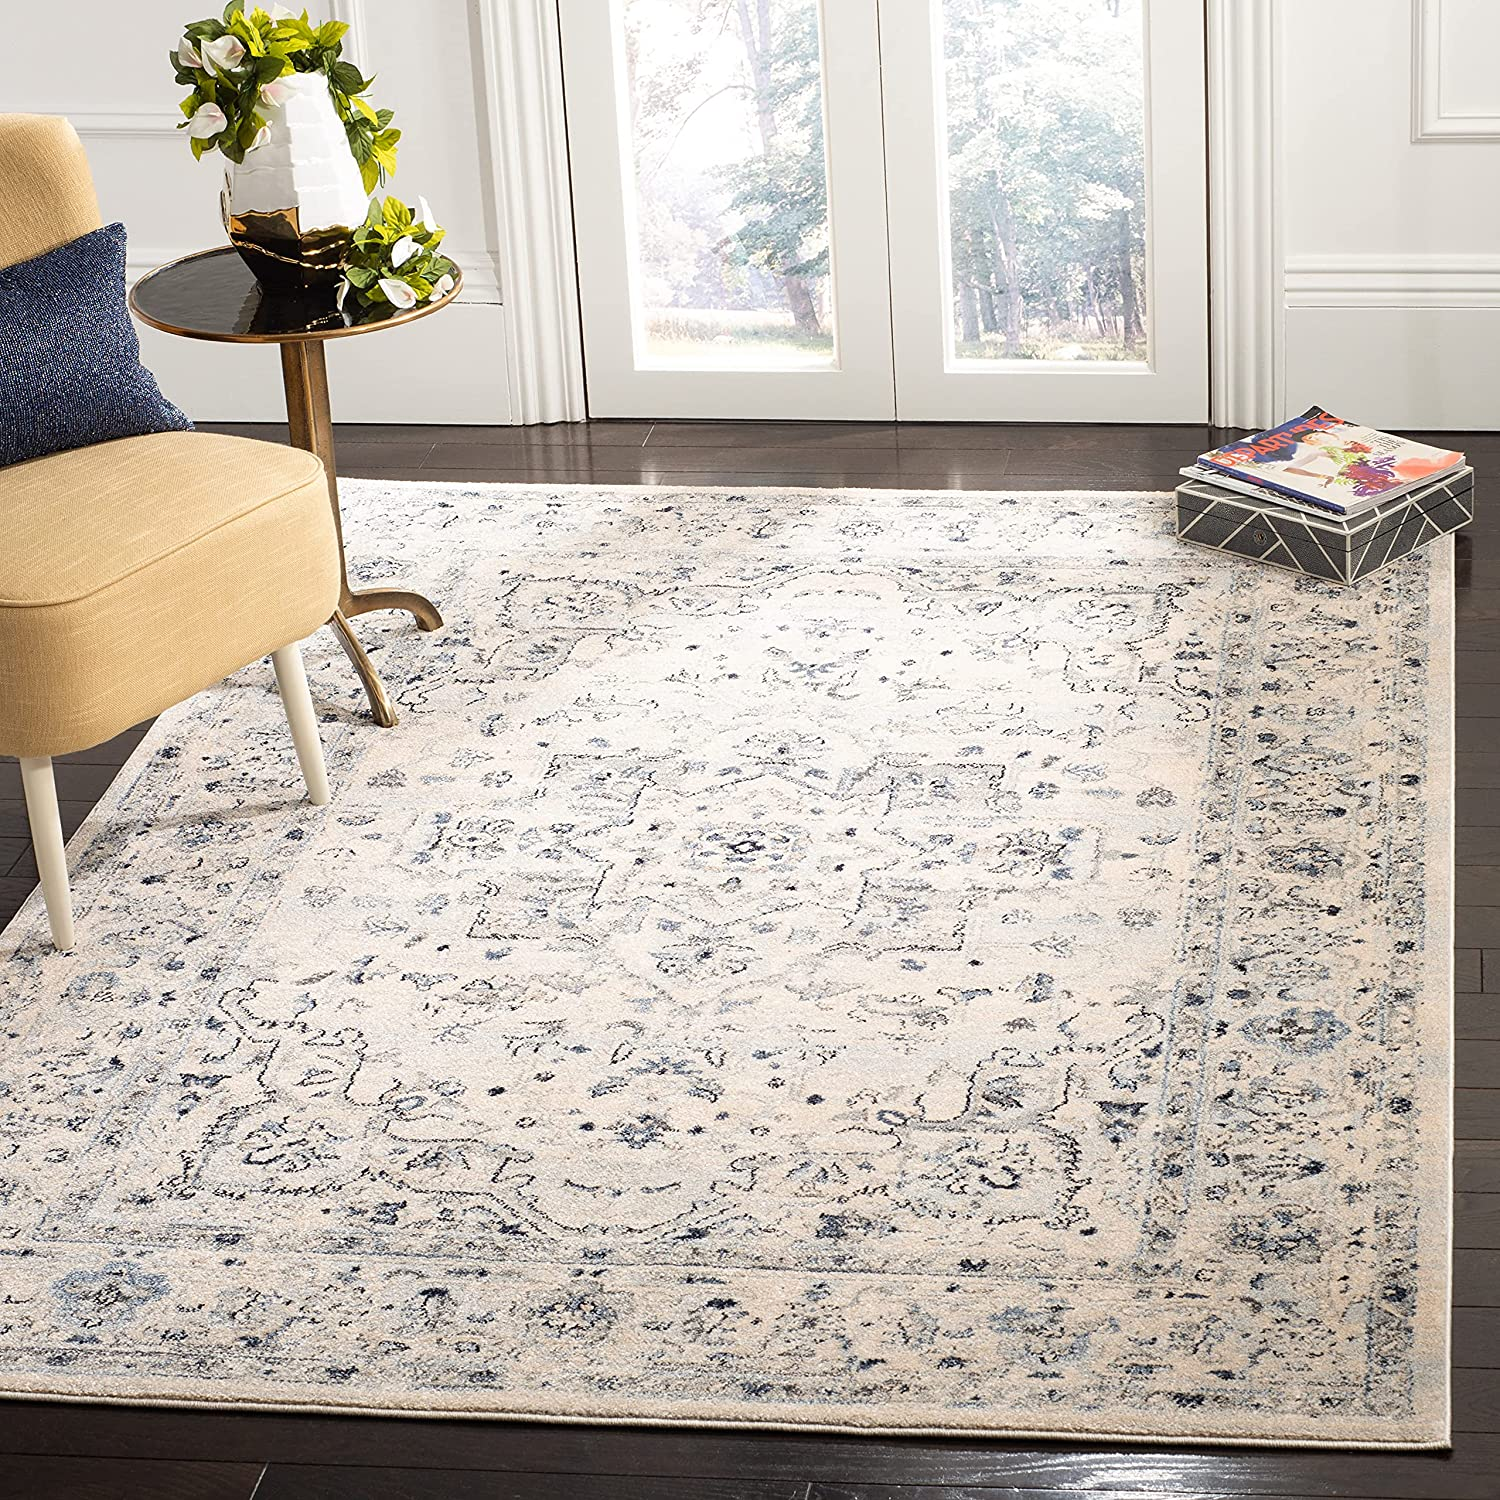 Safavieh Charleston Collection CHL411M Distressed Sales results No. 1 Oriental Non-S New Shipping Free Shipping